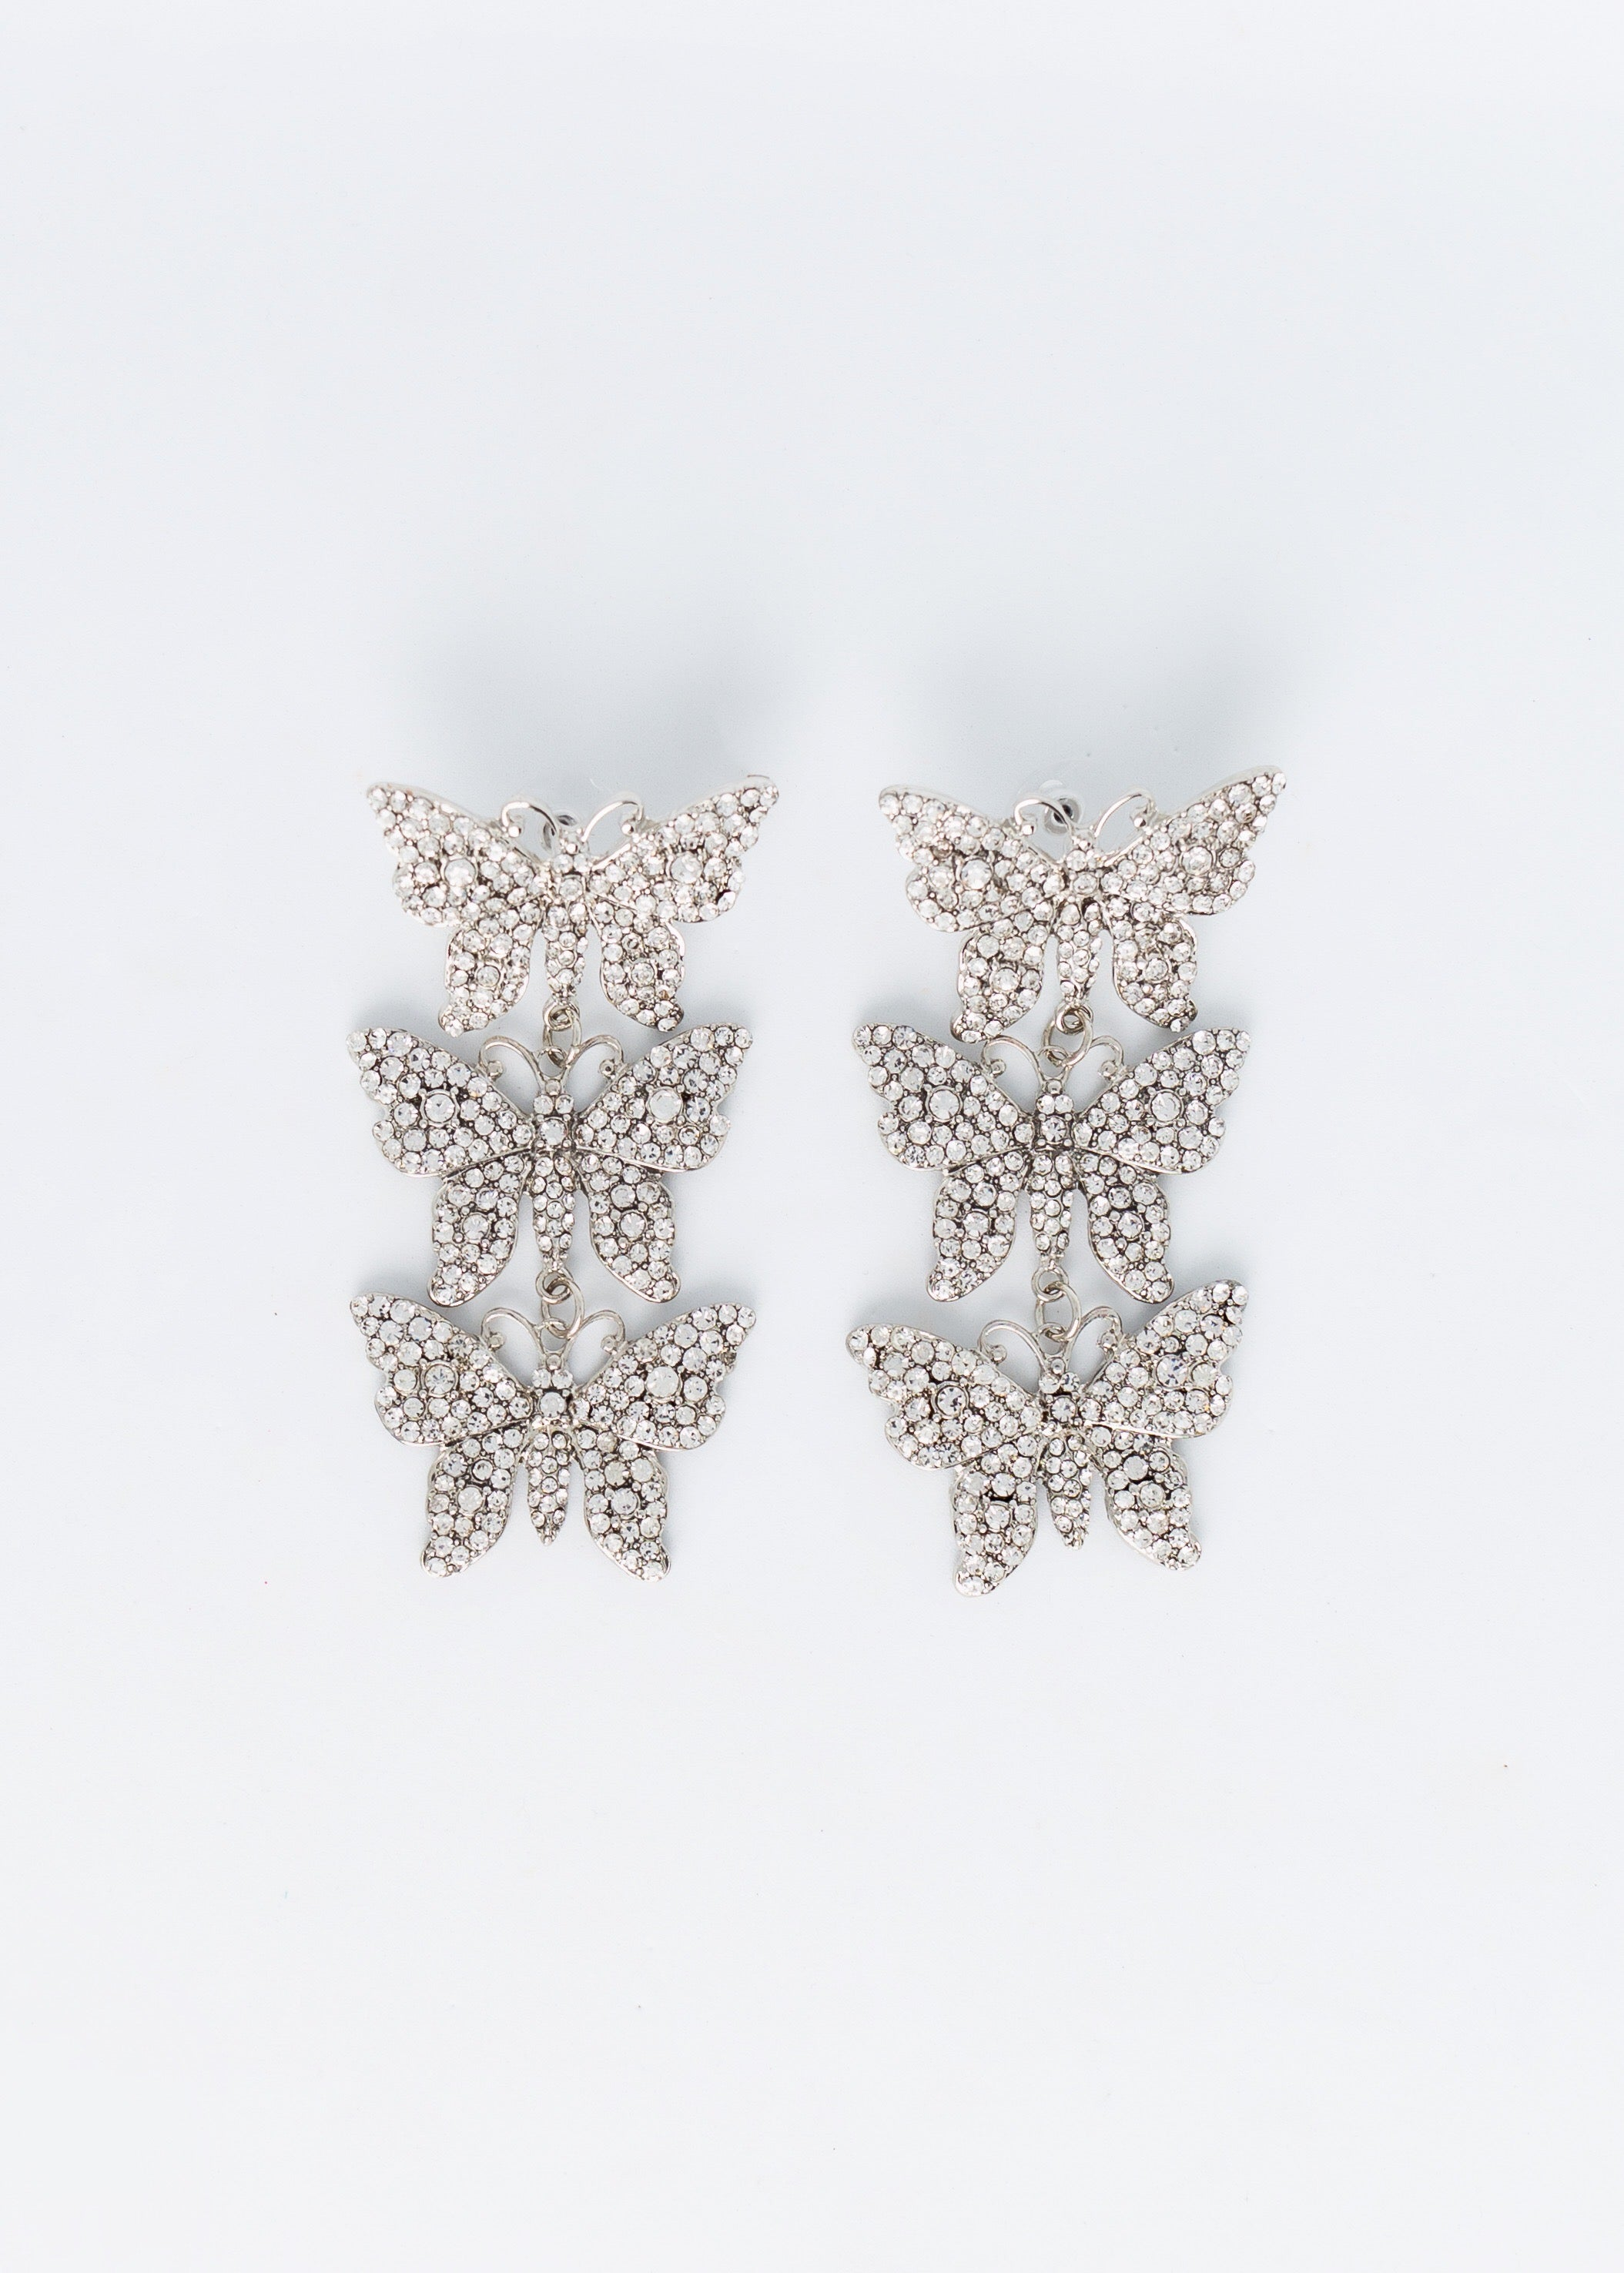 The Love We Share Butterfly Earrings